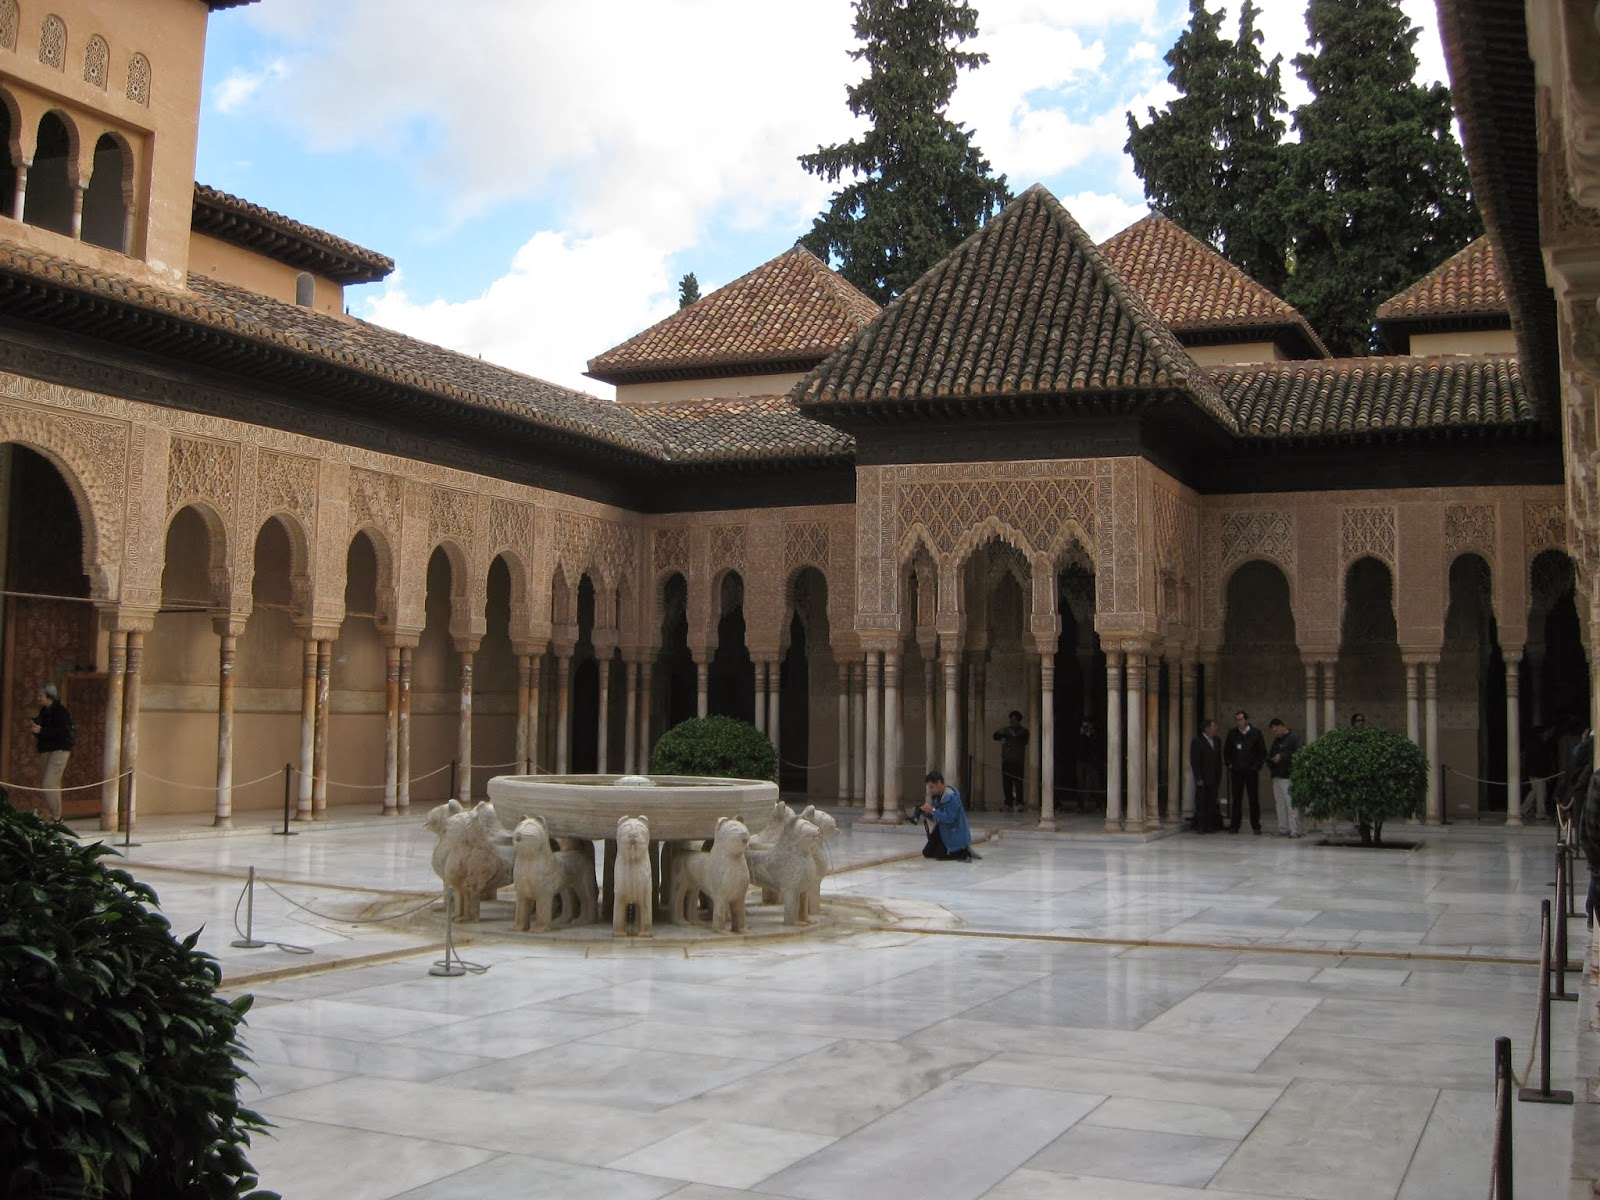 Granada - The Court of the Lions